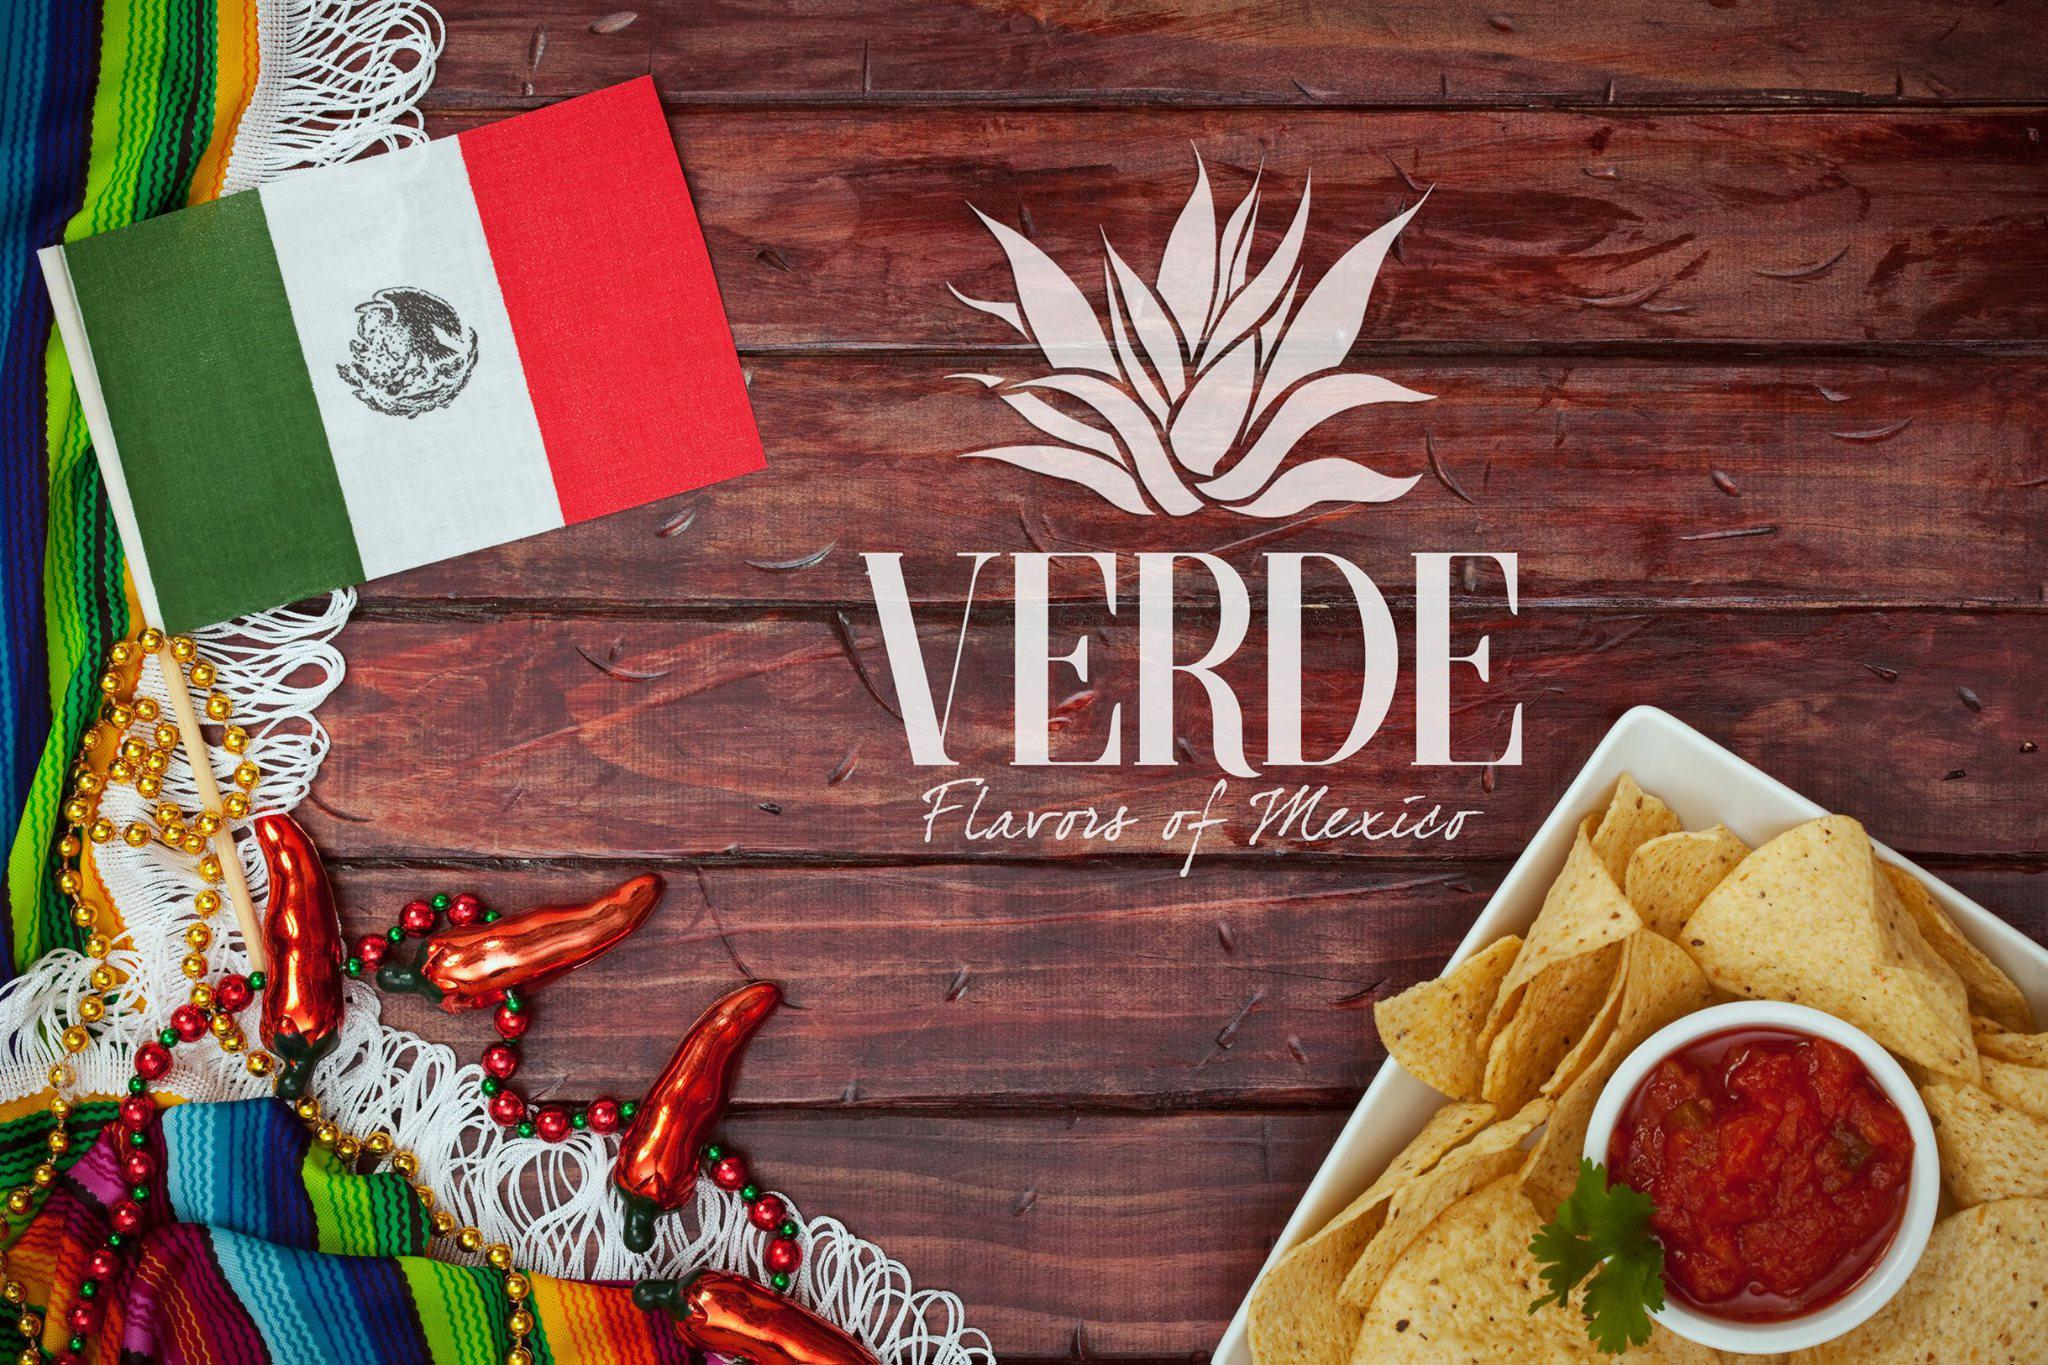 Cinco de Mayo at Verde - Flavors of Mexico in Fishers